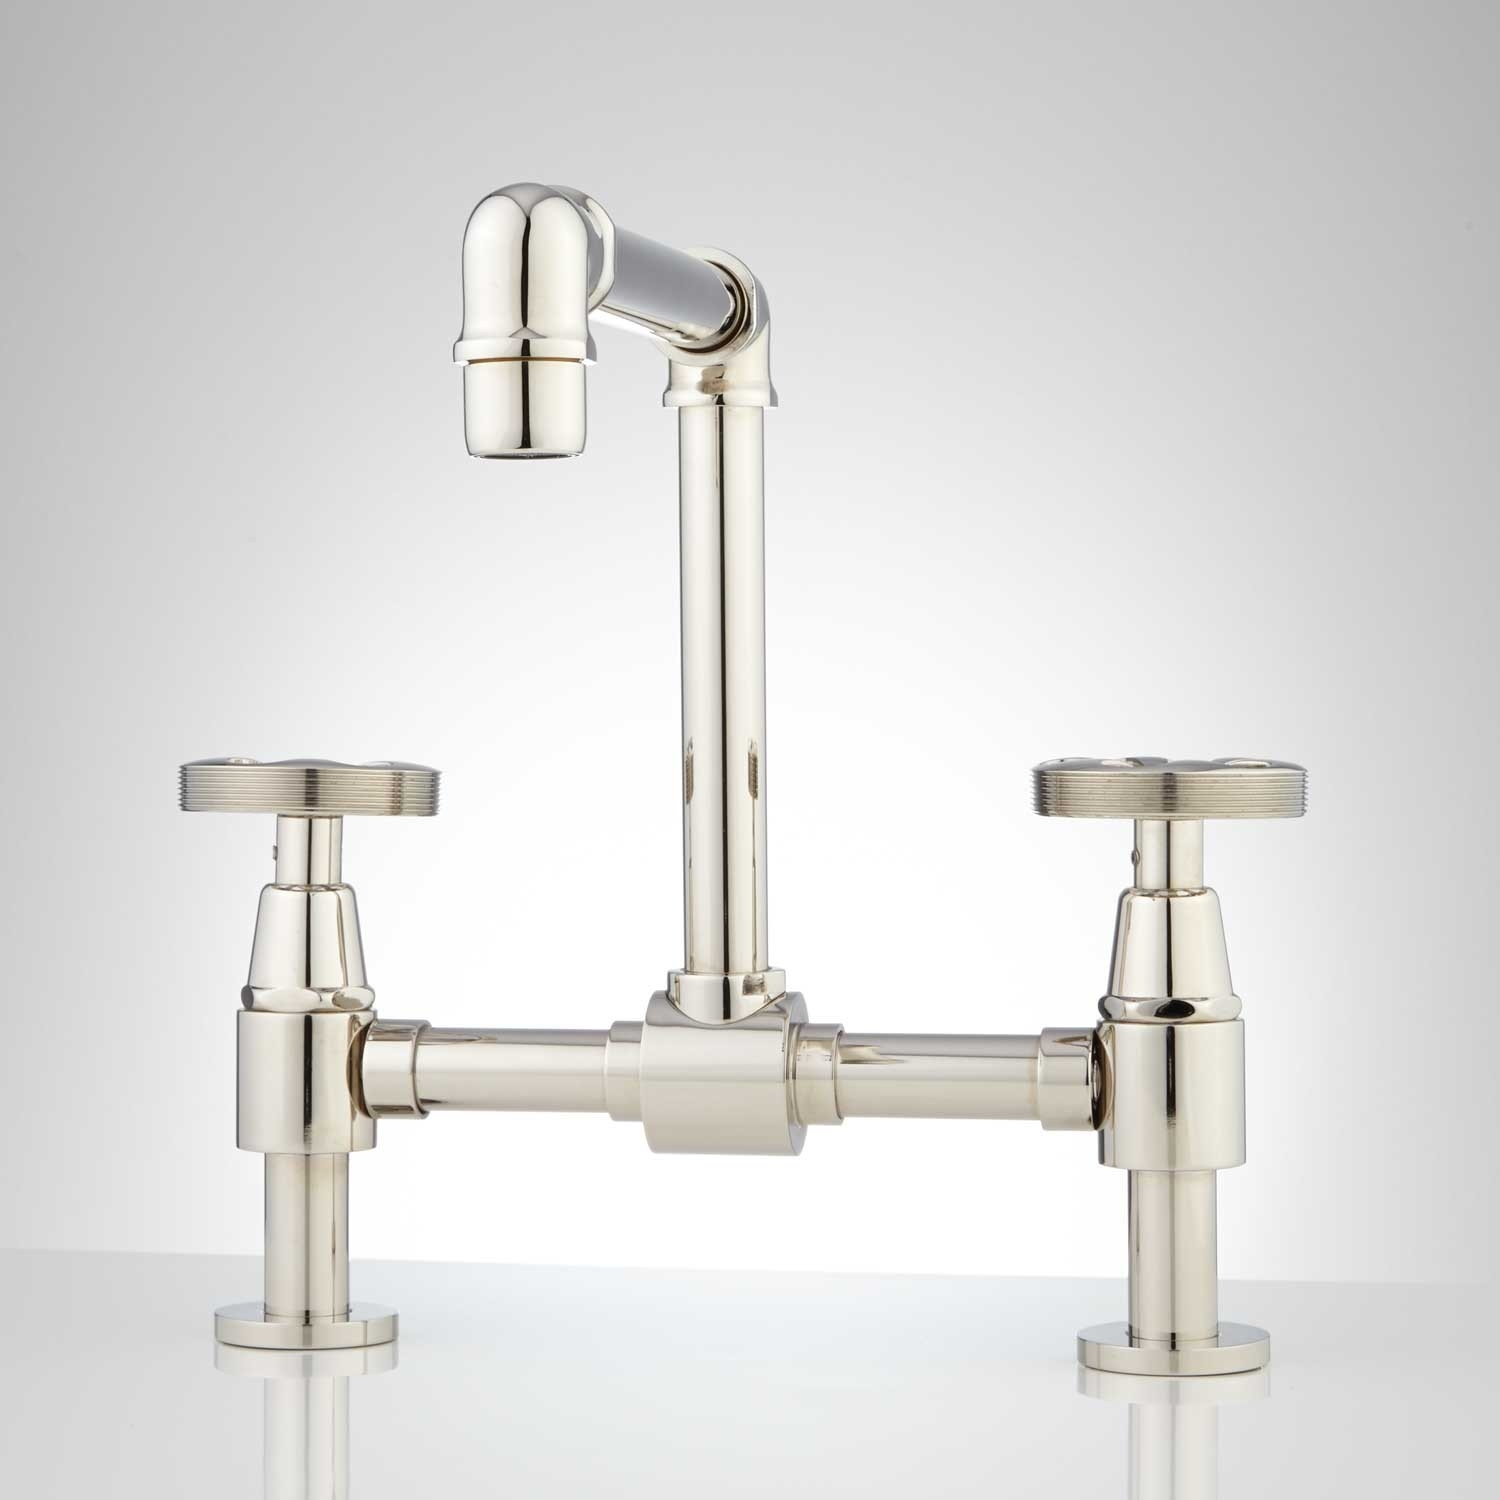 Ideas, rohl bridge faucet with sidespray rohl bridge faucet with sidespray kitchen bridge faucet for kitchen design to ease of maintenance 1500 x 1500  .